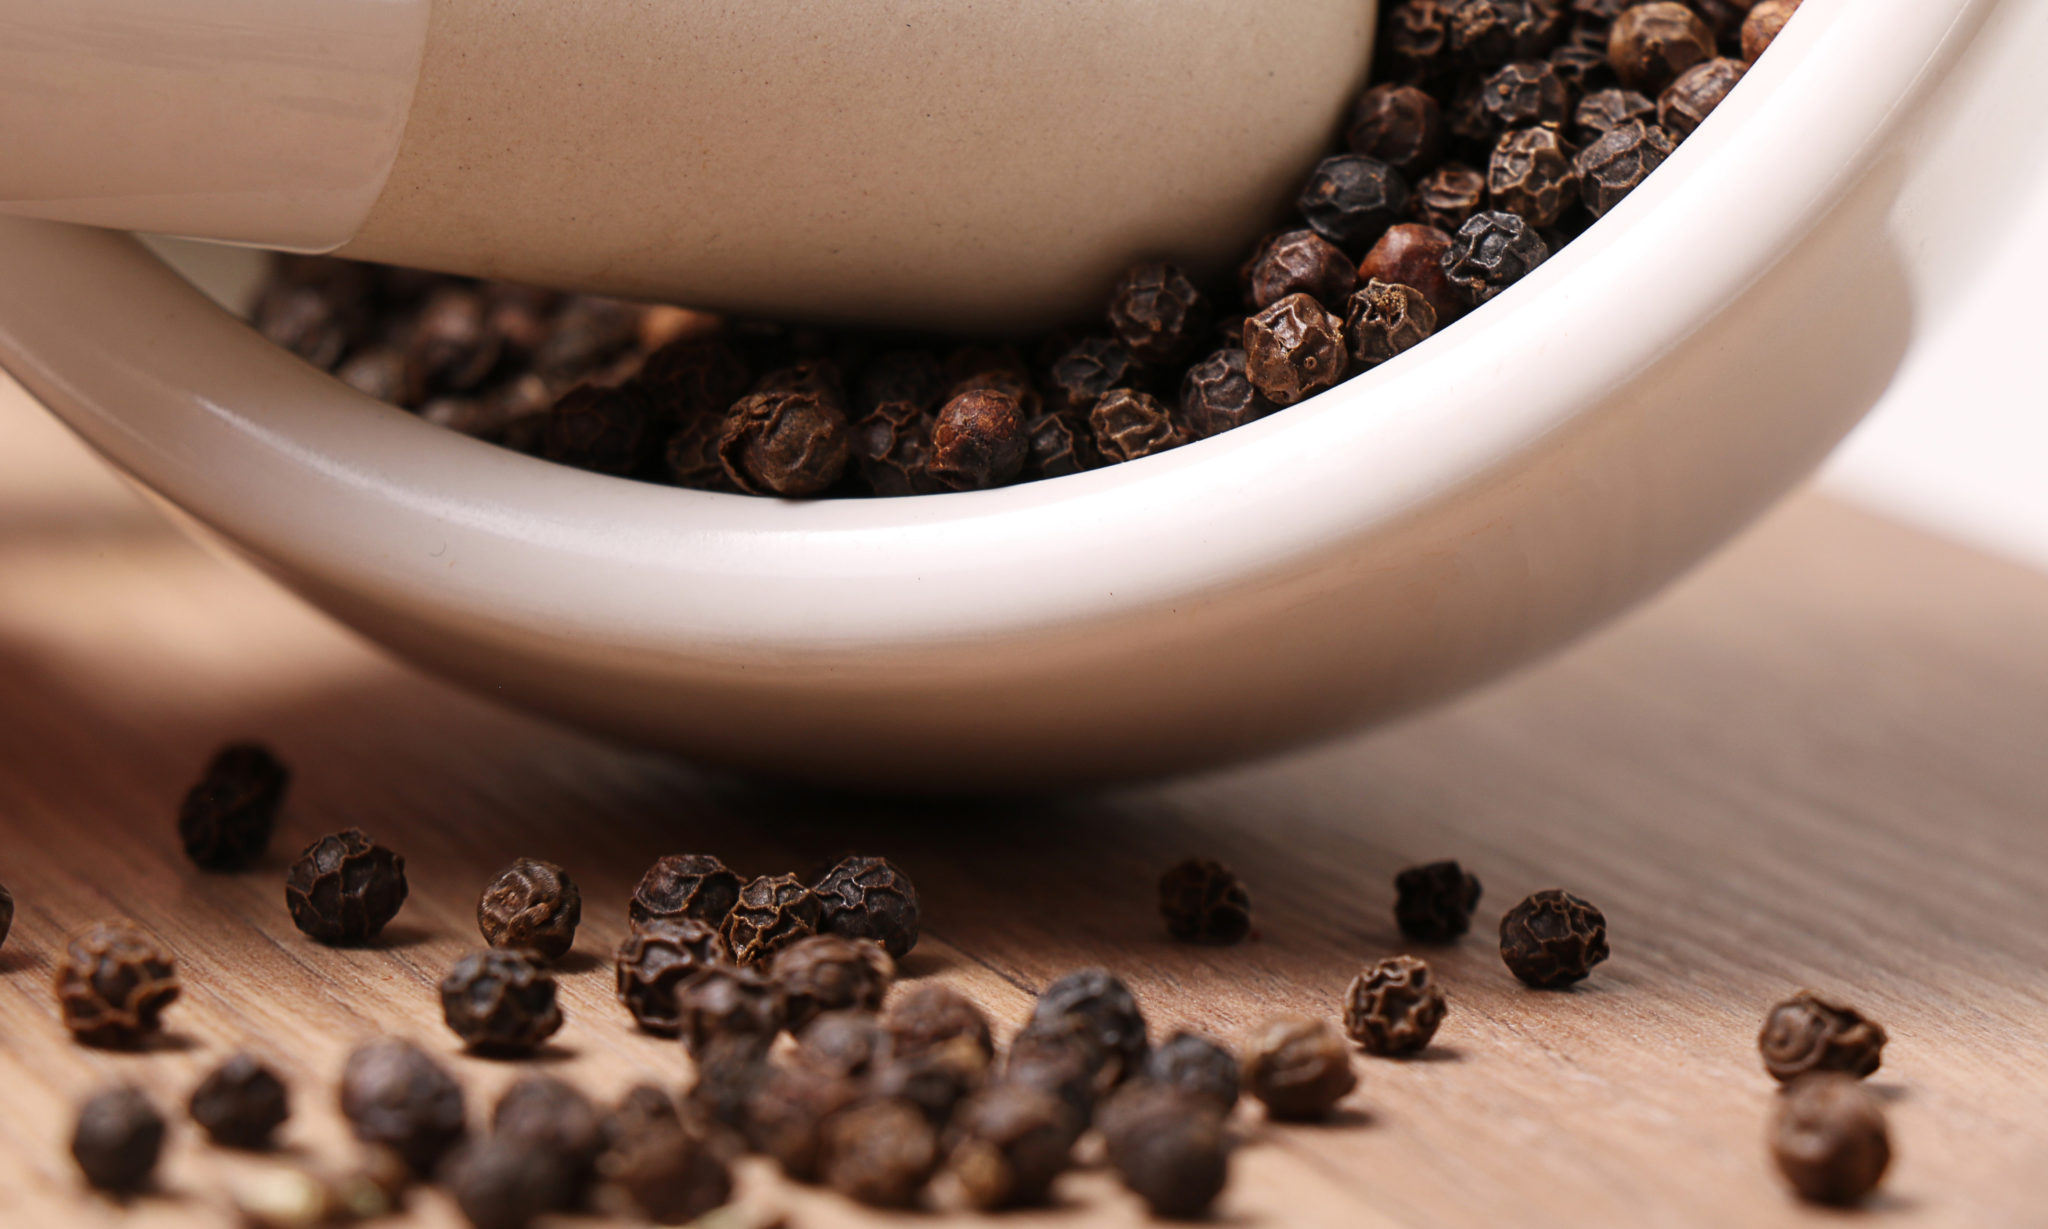 Joseph MacLean helped to create a fair trade distribution system for Cambodia's Kampot Pepper.